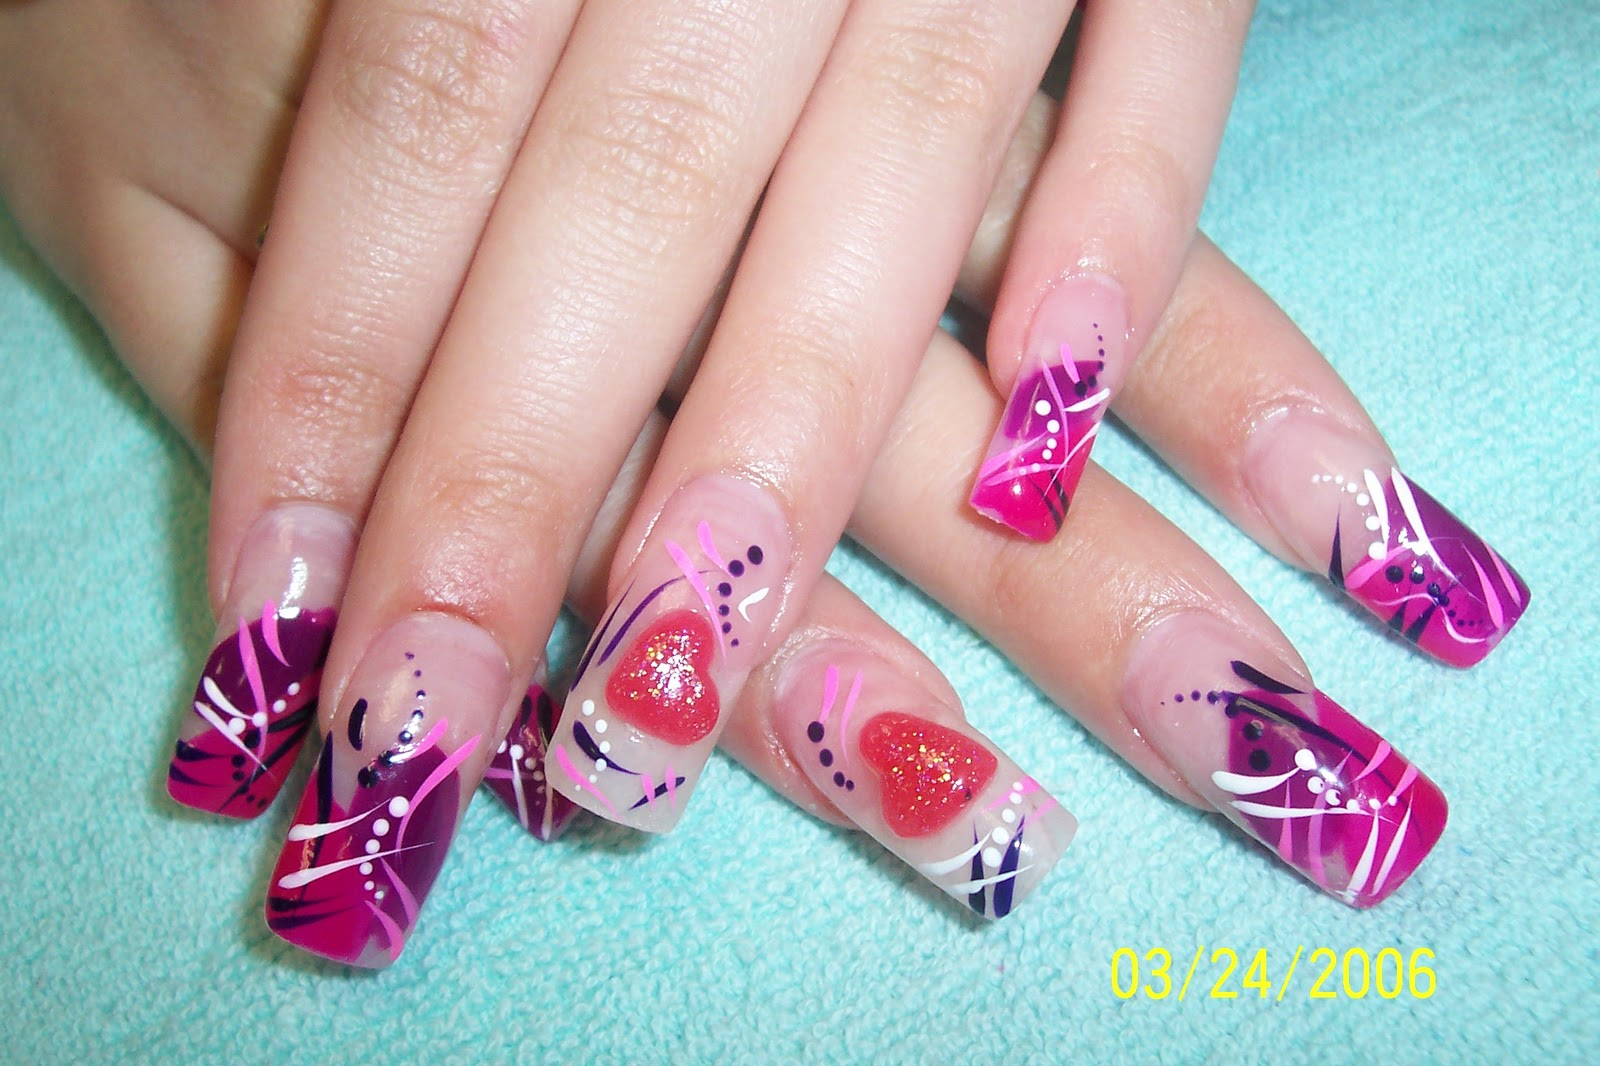 Cute acrylic nail designs 2015 reasabaidhean for Acrylic nail decoration